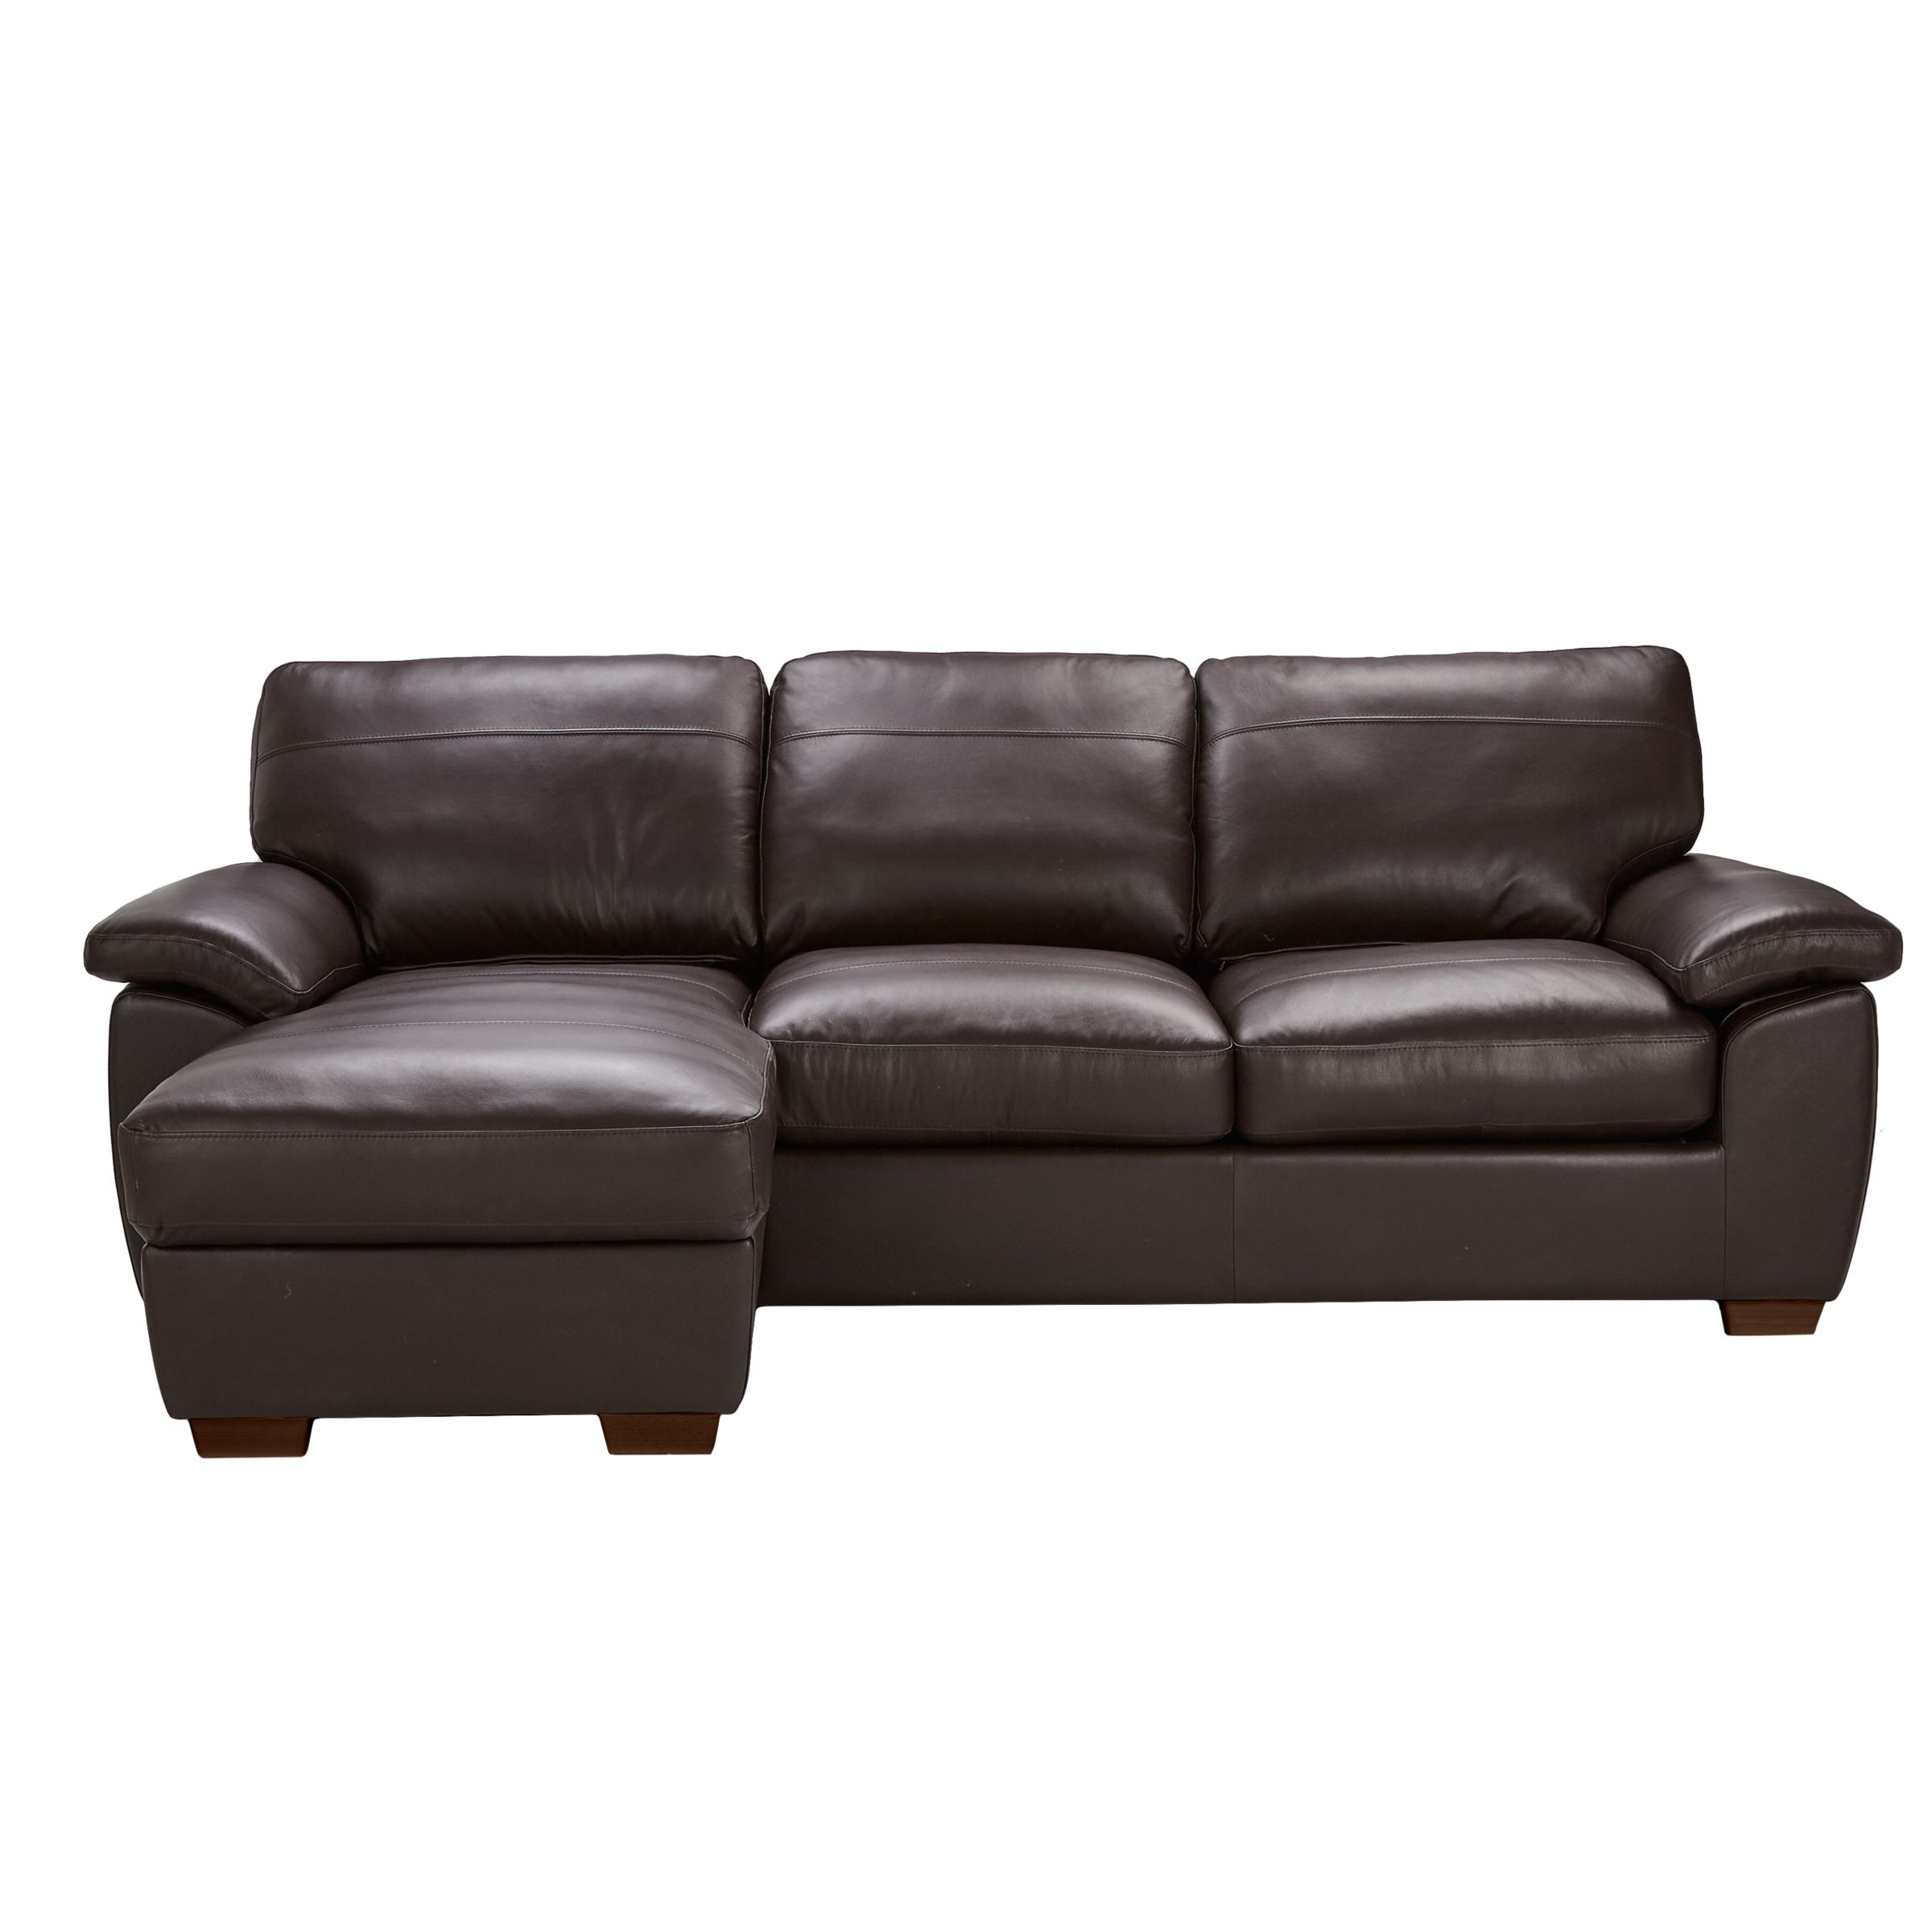 Excellent John Lewis Camden Leather Medium 2 Seater Sofa Bed With Uwap Interior Chair Design Uwaporg